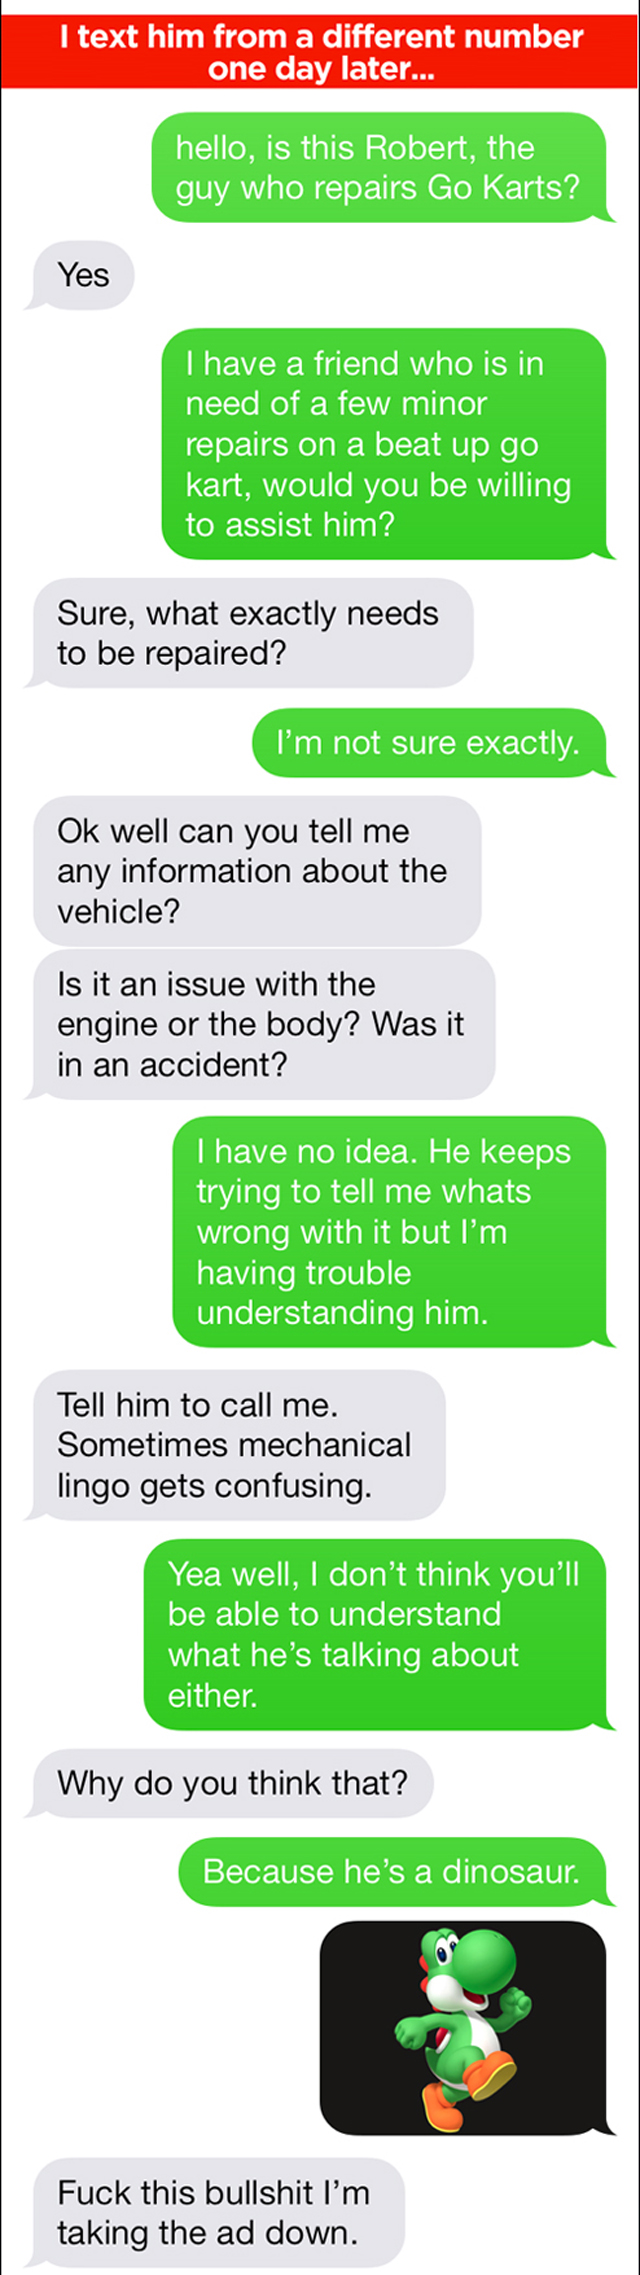 Go-Kart repairman text troll